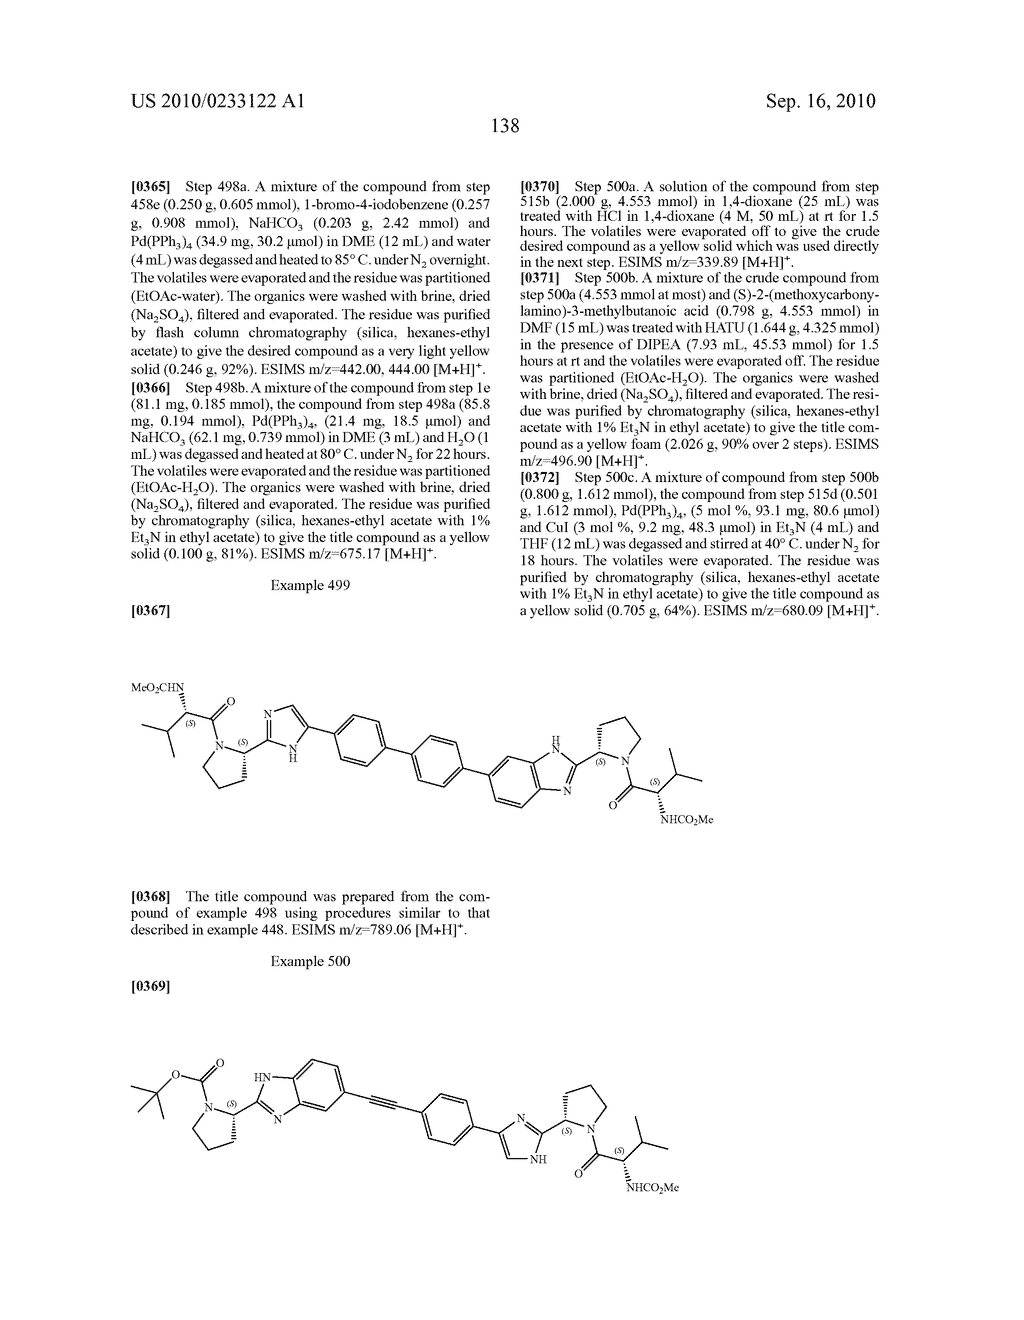 NOVEL BENZIMIDAZOLE DERIVATIVES - diagram, schematic, and image 139